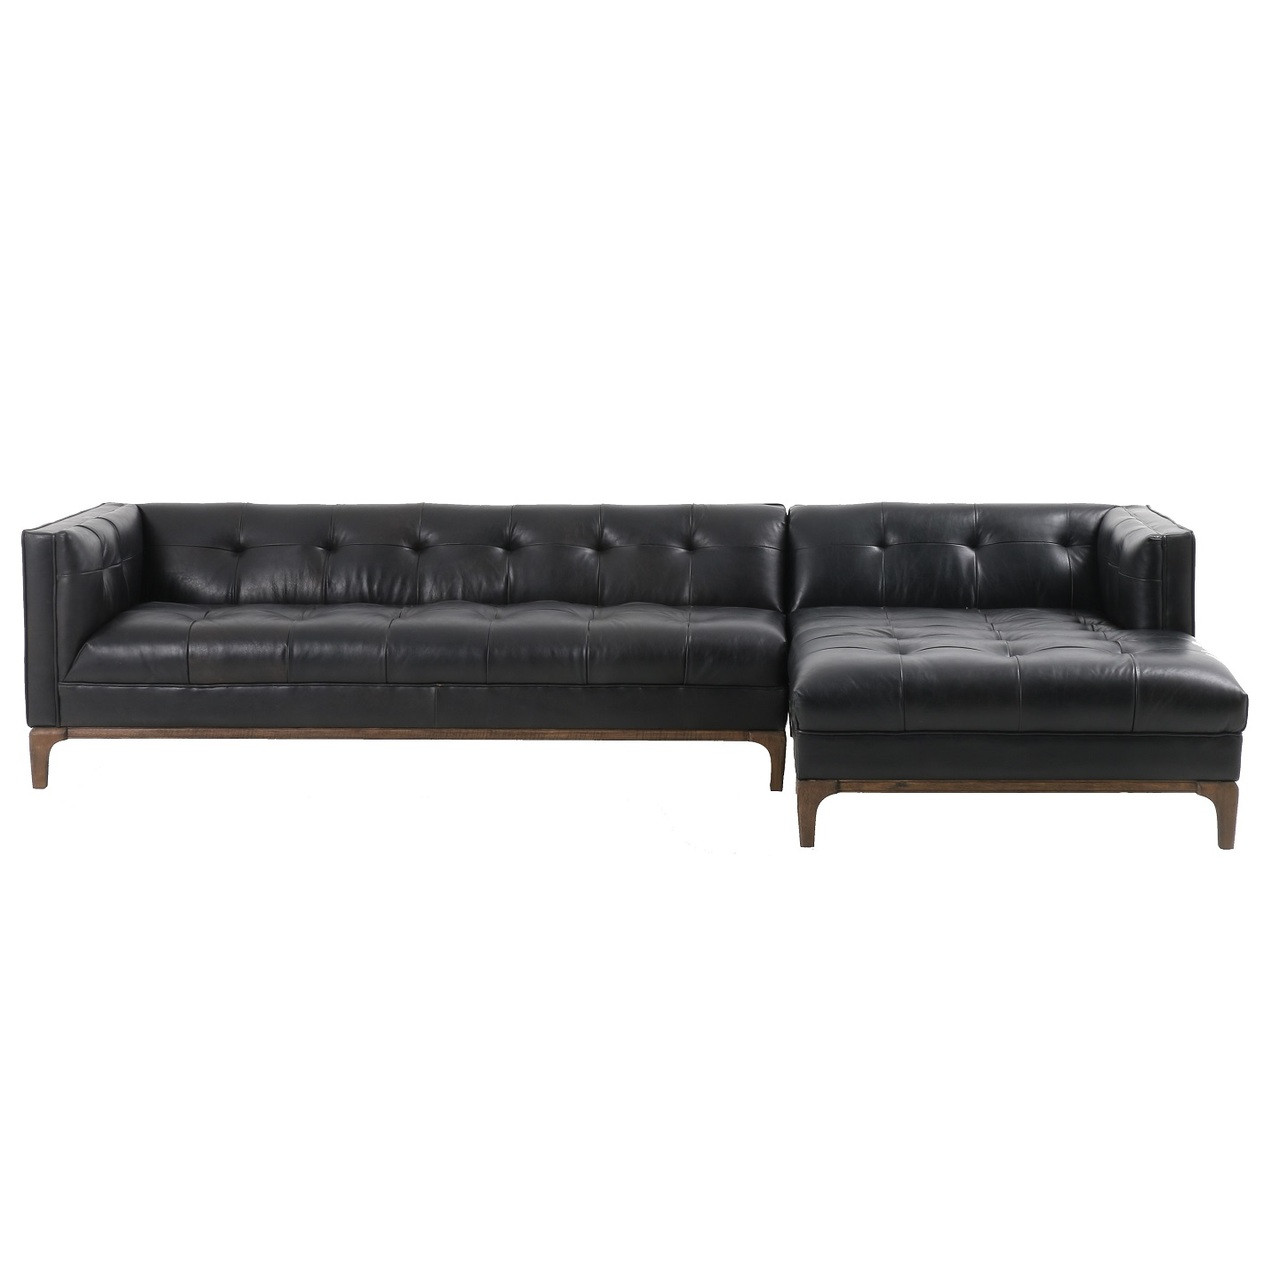 Dylan Mid-Century Modern Tufted Black Leather Sectional Sofa